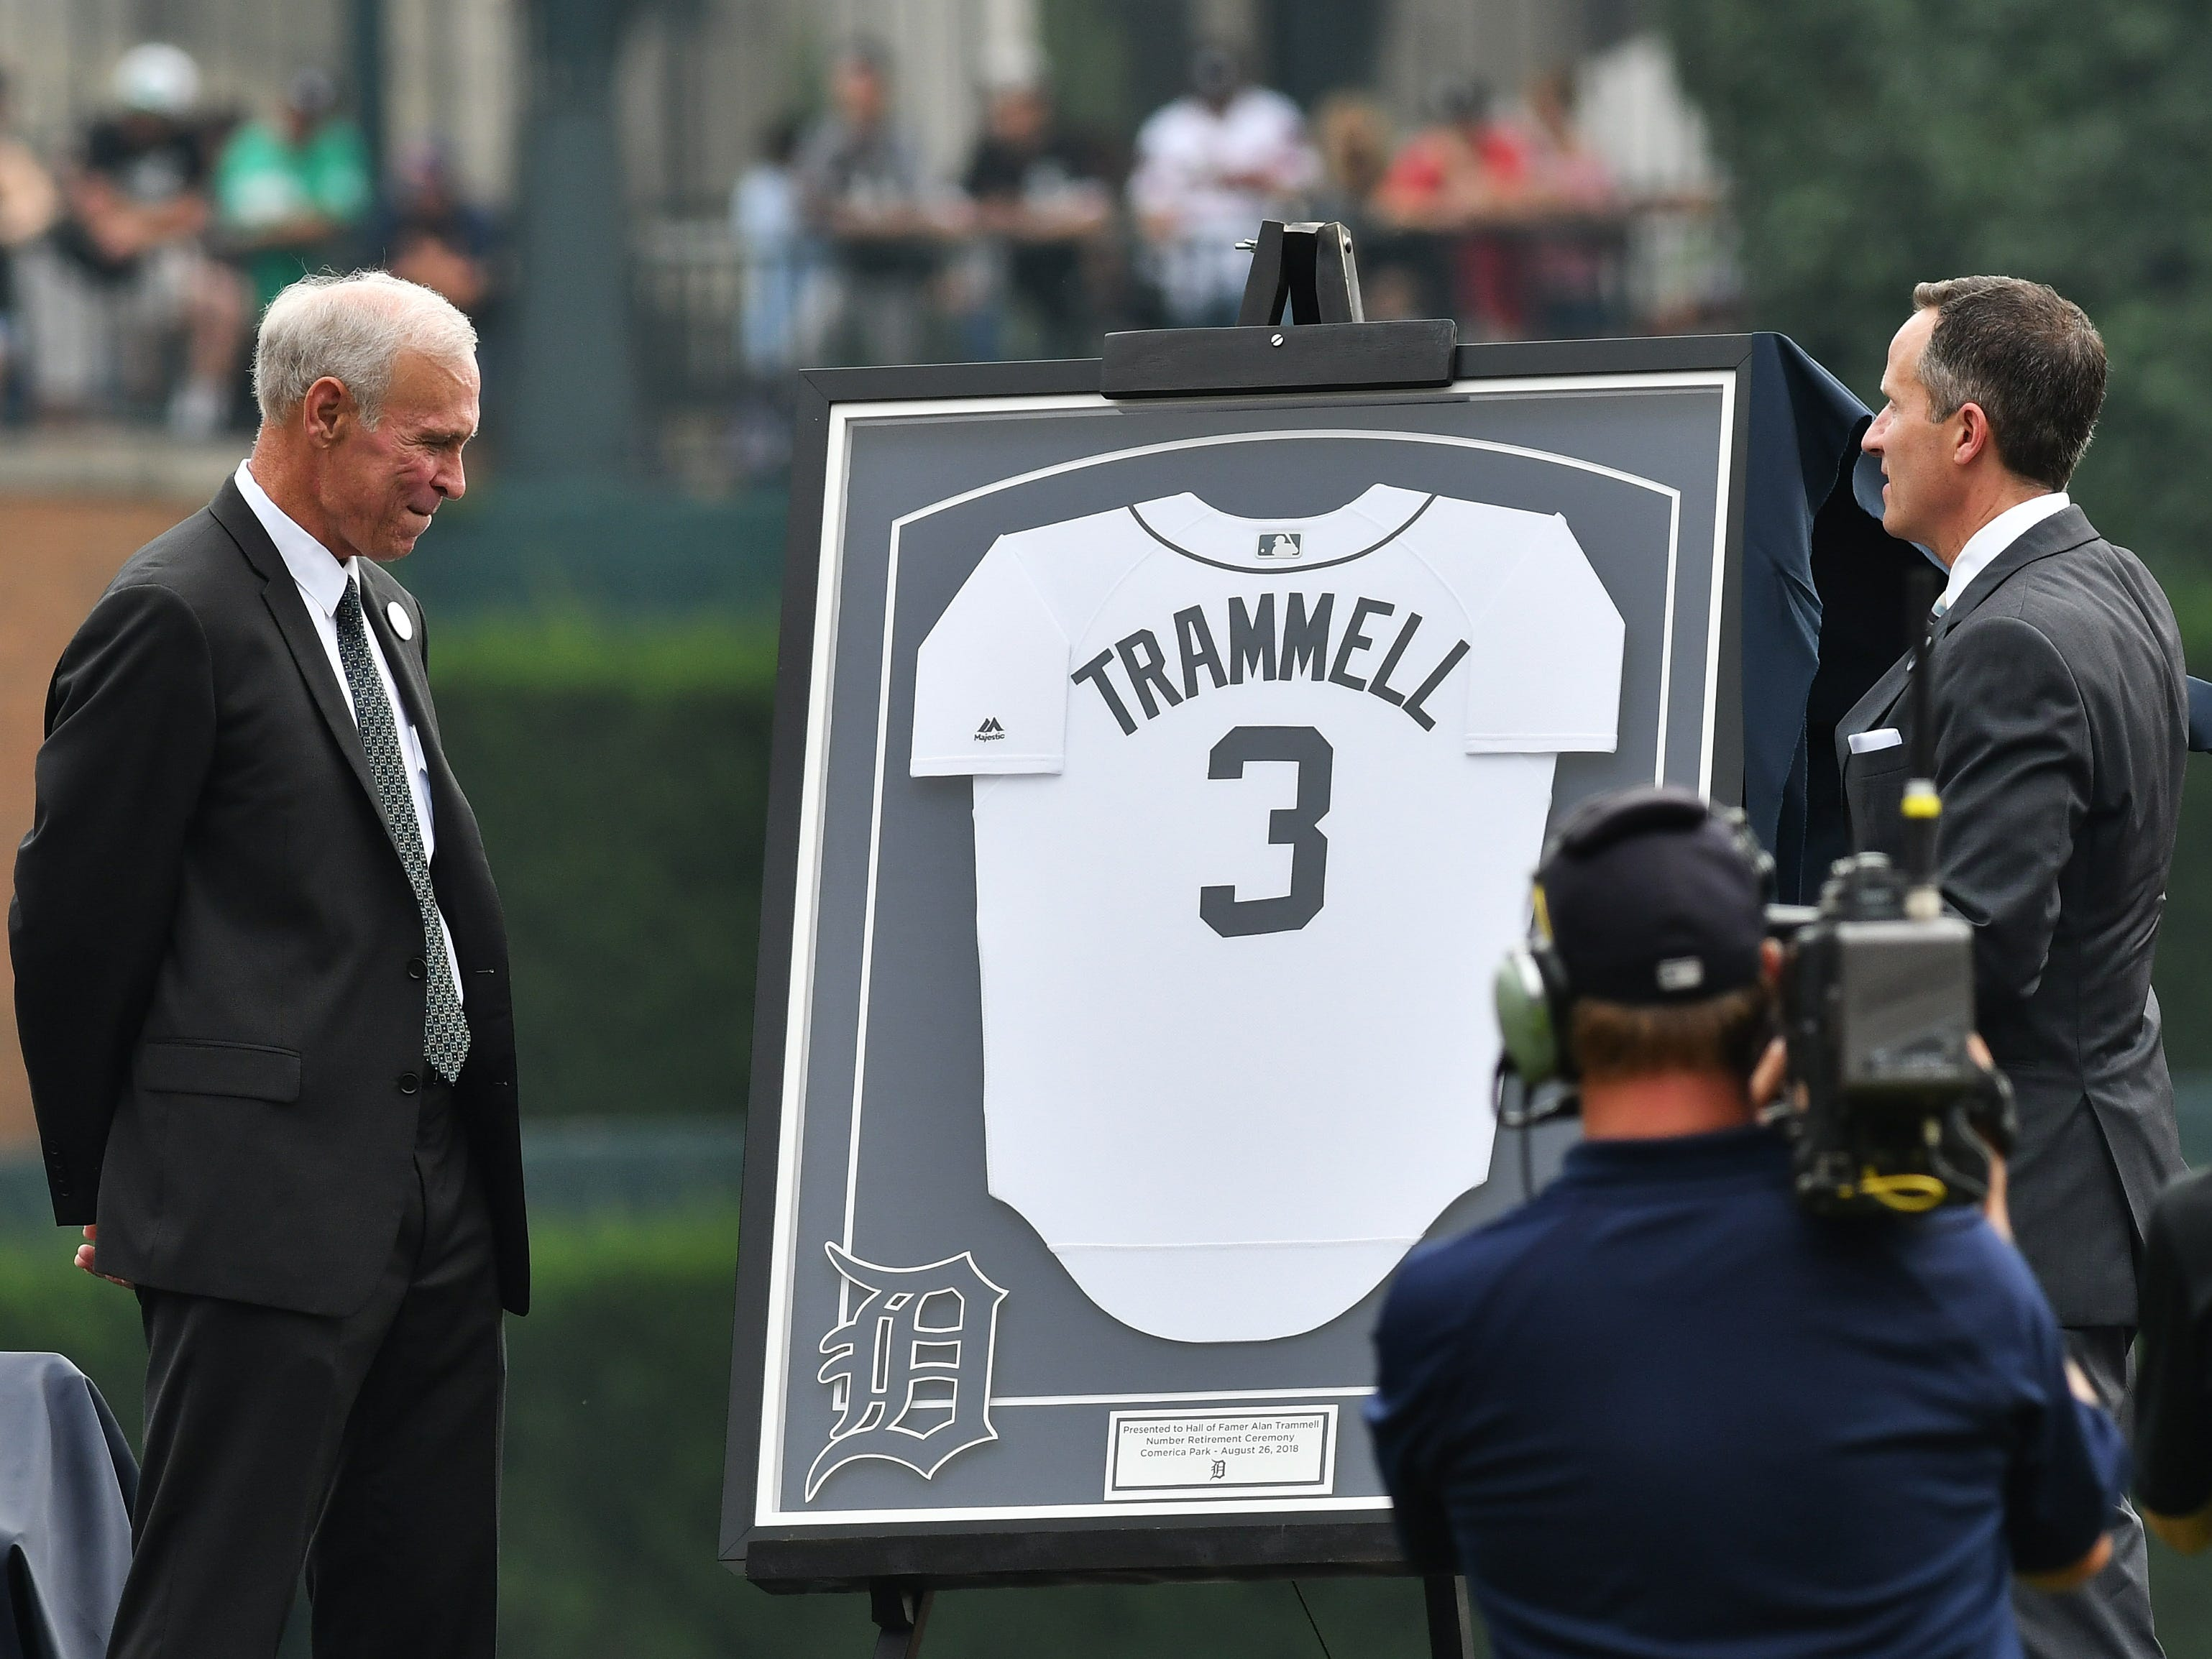 Former Detroit Tigers shortstop Alan Trammell looks on as Chris Ilitch, President and CEO of Ilitch Holdings, presents him with a framed jersey and inscription during a special pregame ceremony to retire the Trammell's #3 jersey before a game at Comerica Park in Detroit on Aug. 26, 2018. Trammell and 1984 World Series champion Detroit Tigers teammate Jack Morris were both  inducted into the Major League Baseball Hall of Fame in 2018.